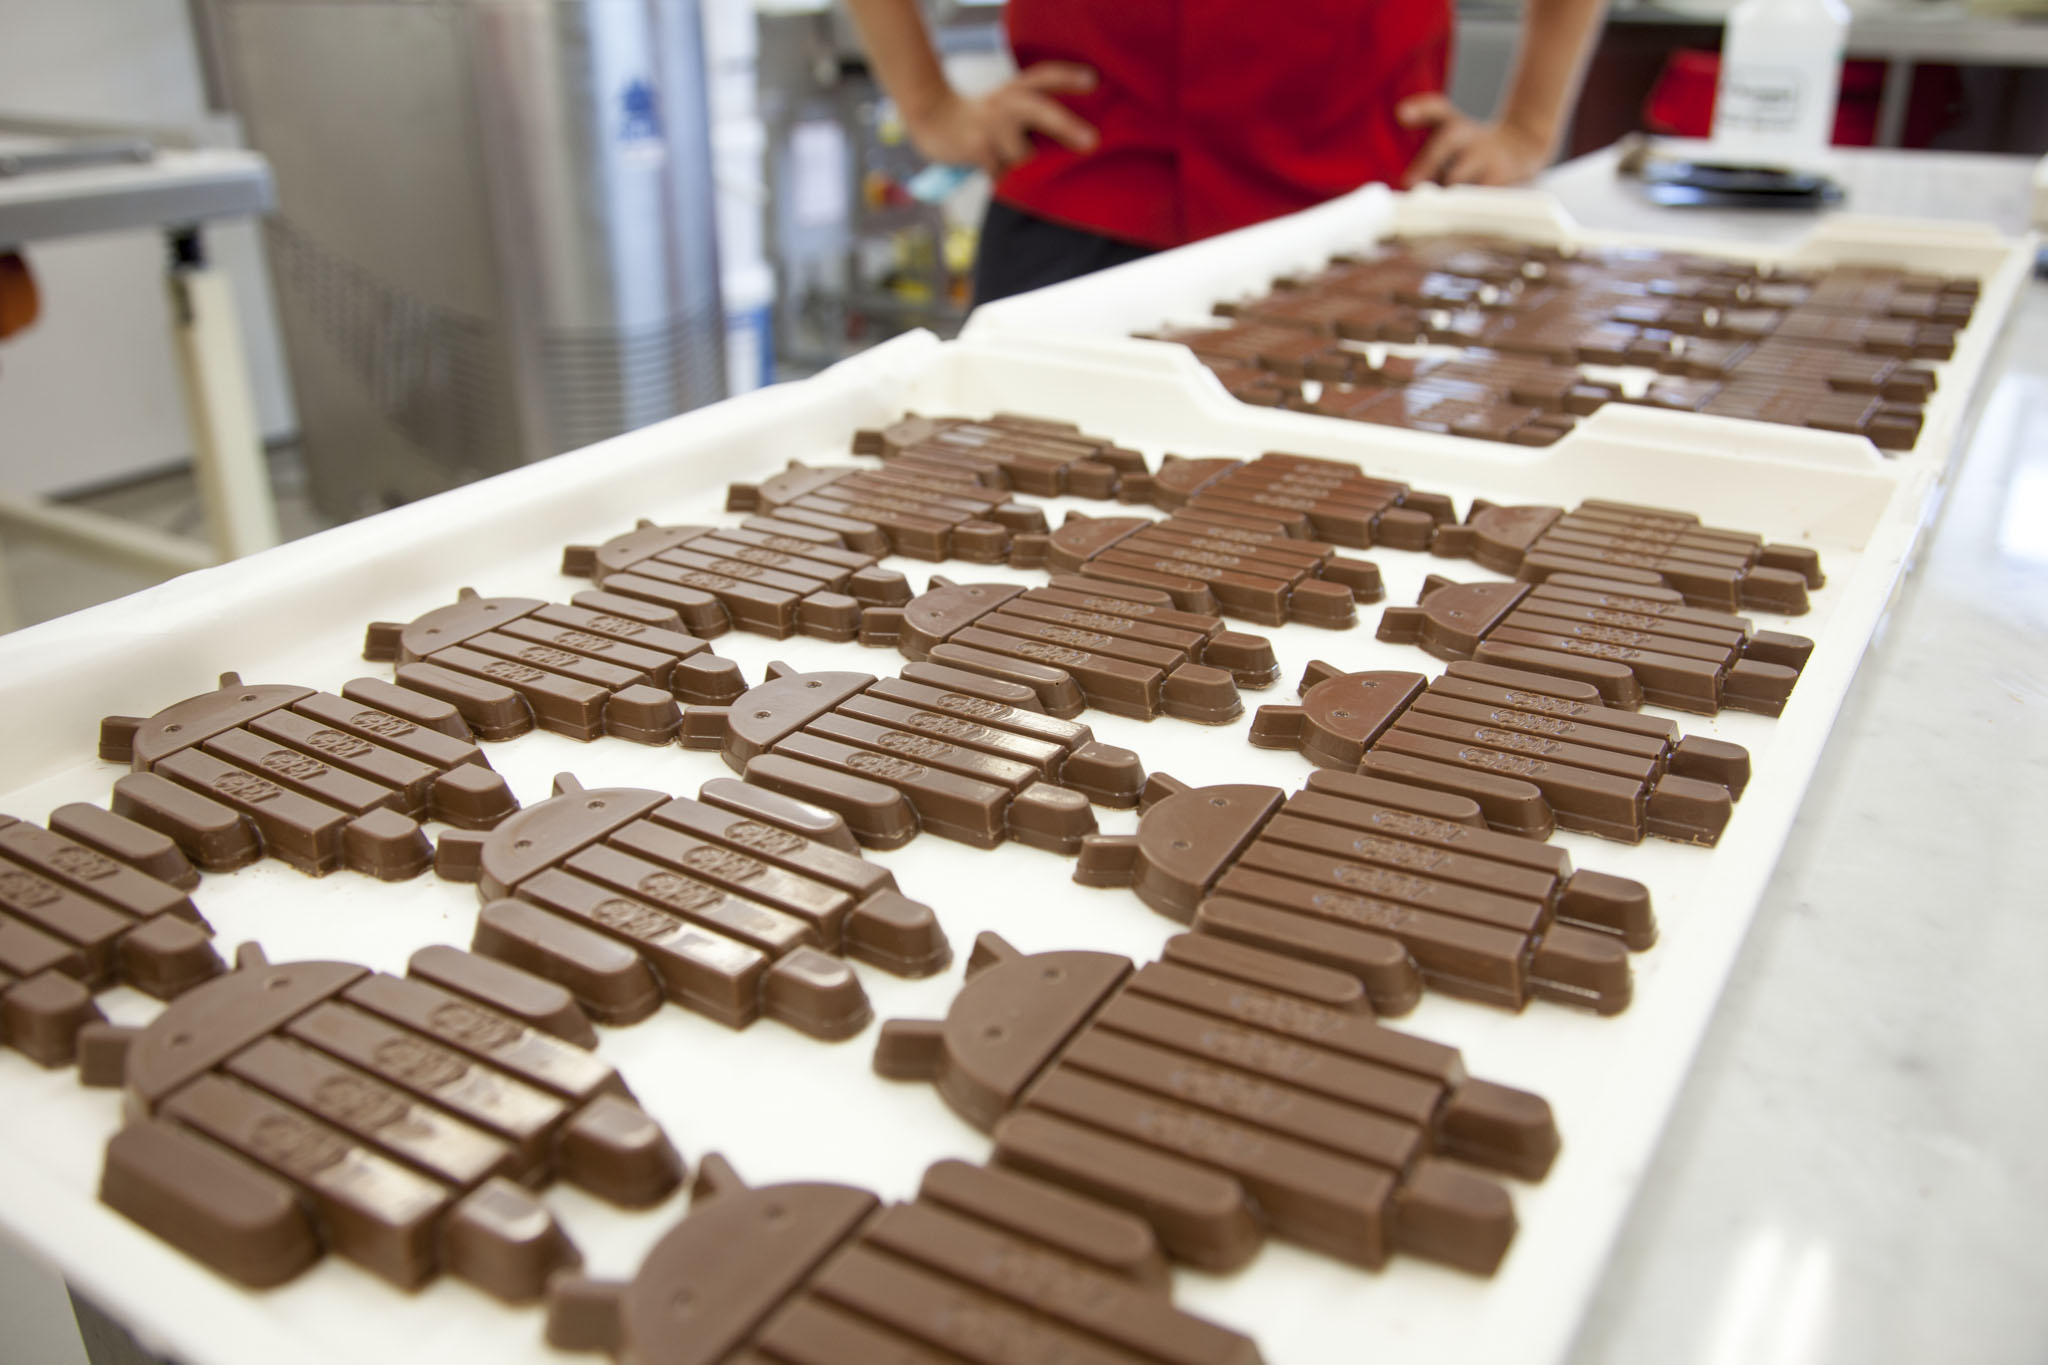 Android KitKat chocolate bars